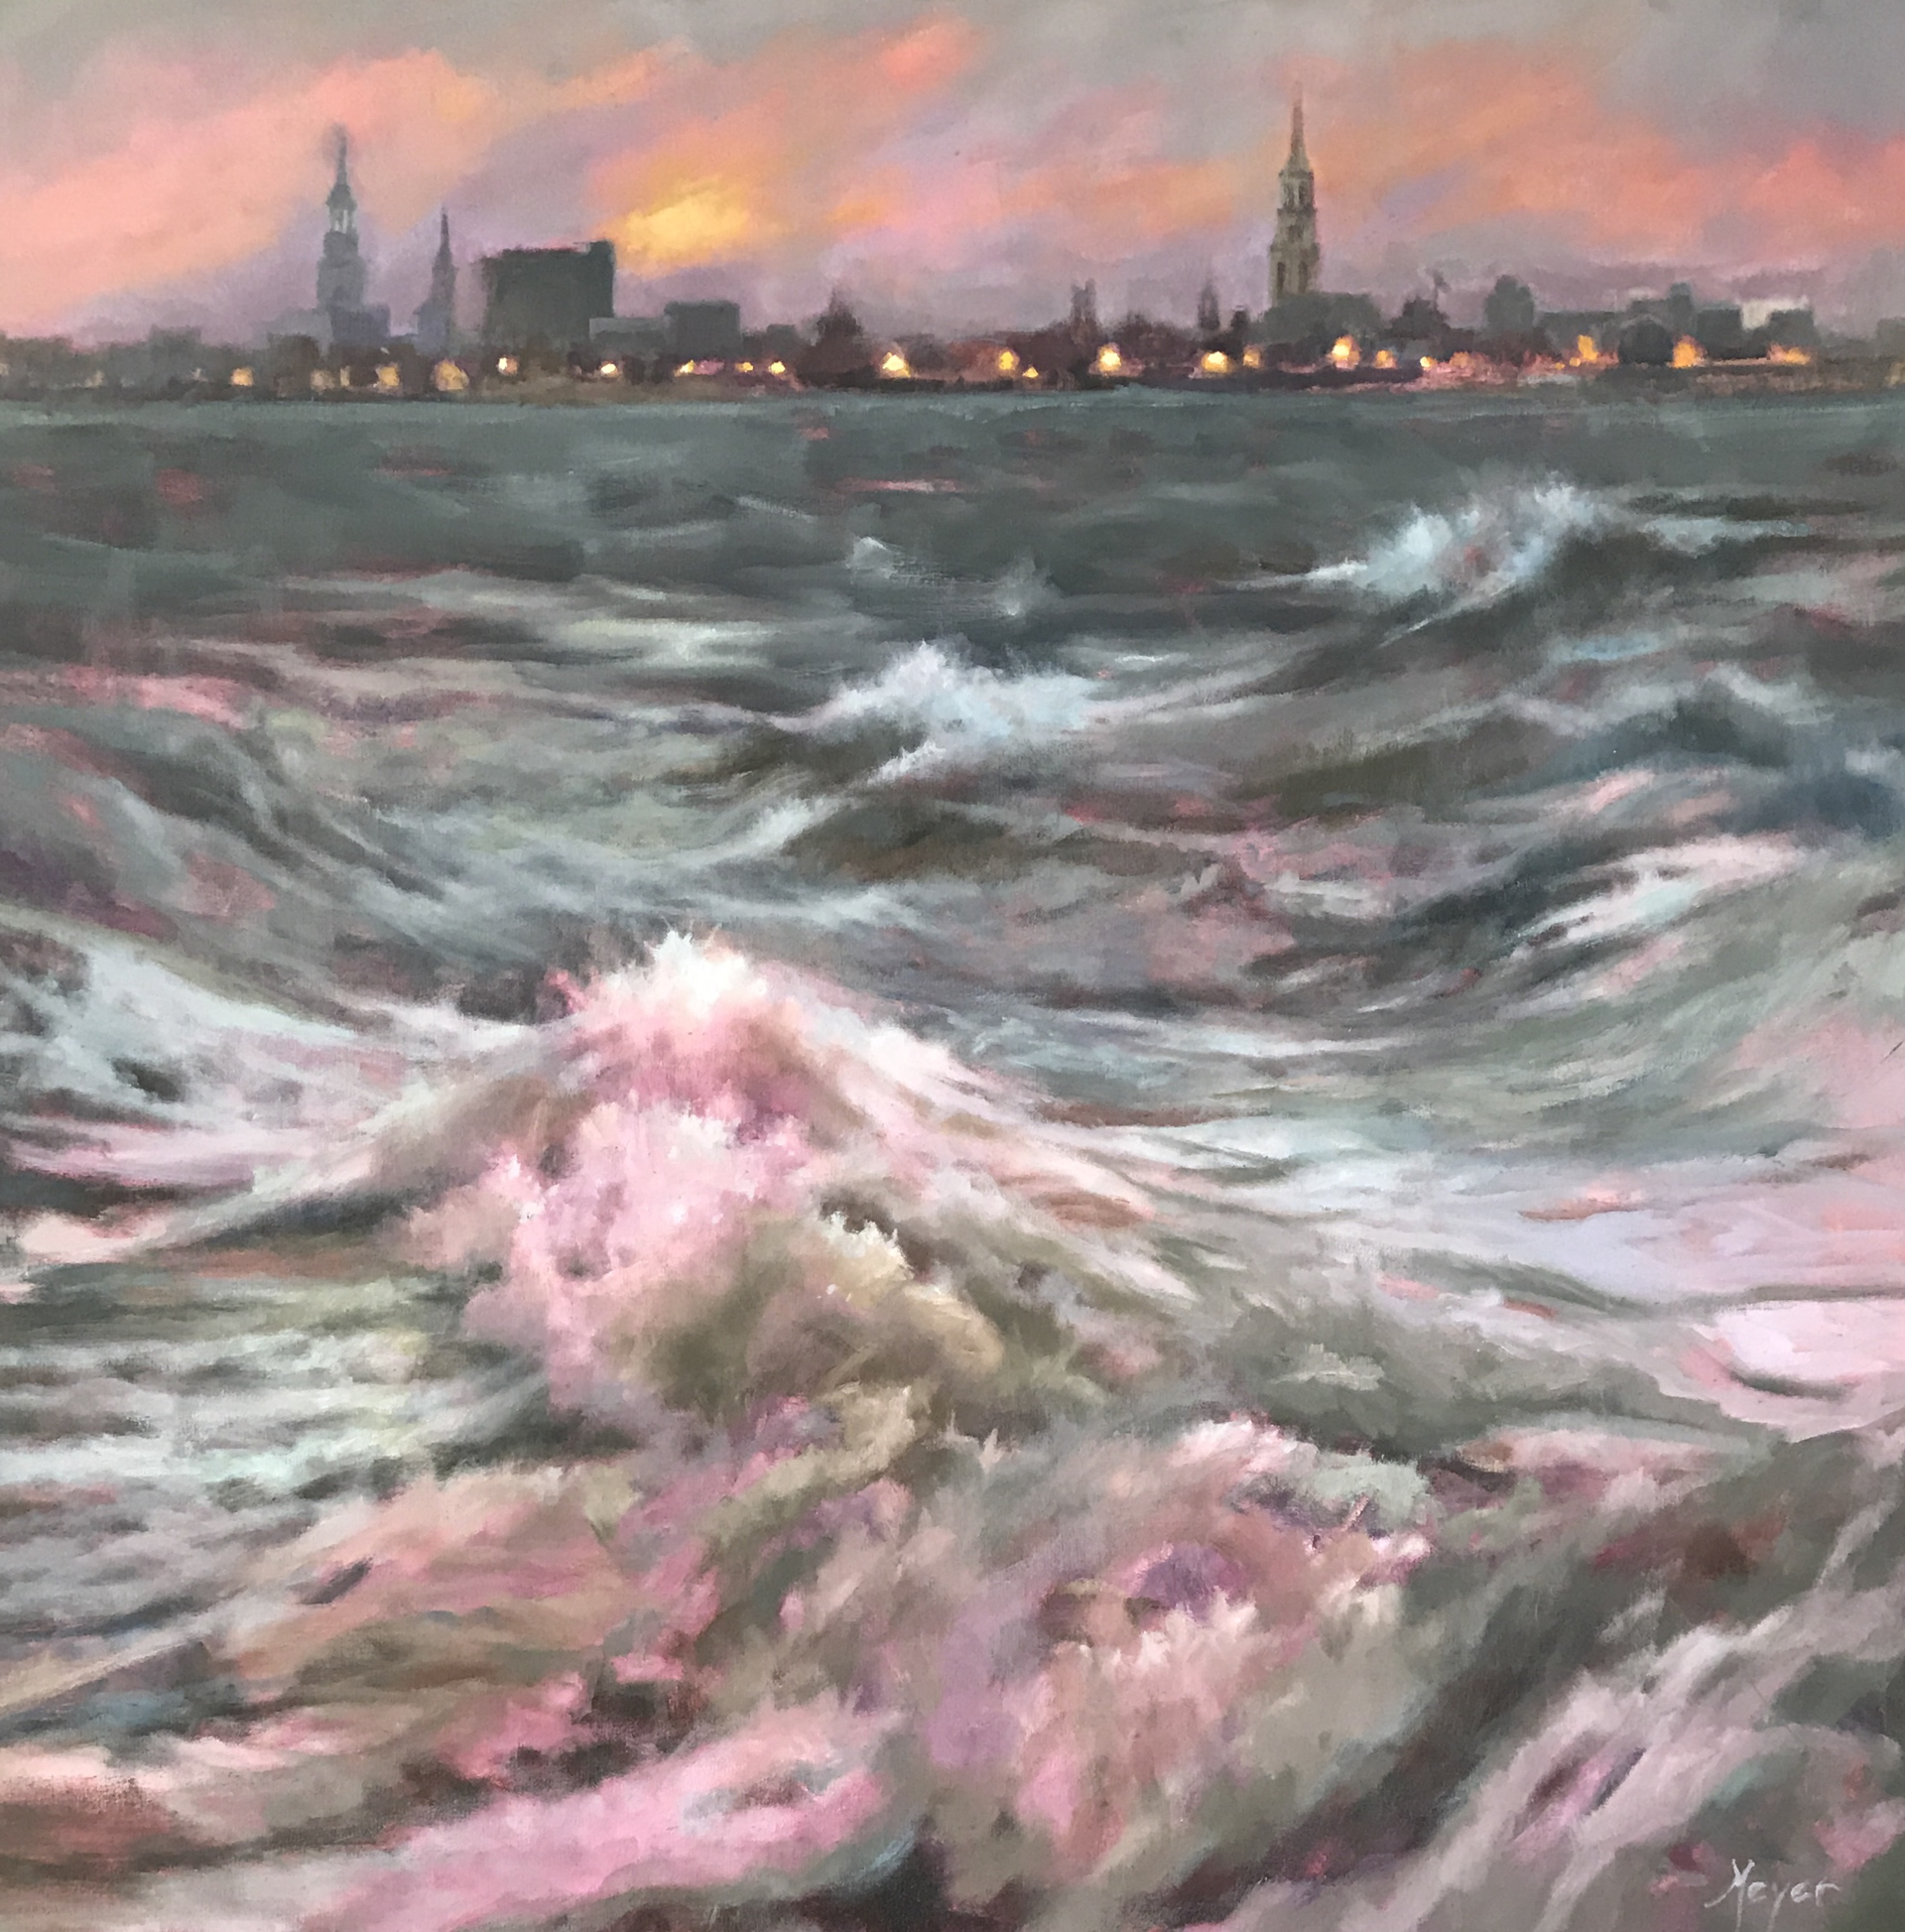 Wake and Waves by Laurie Meyer